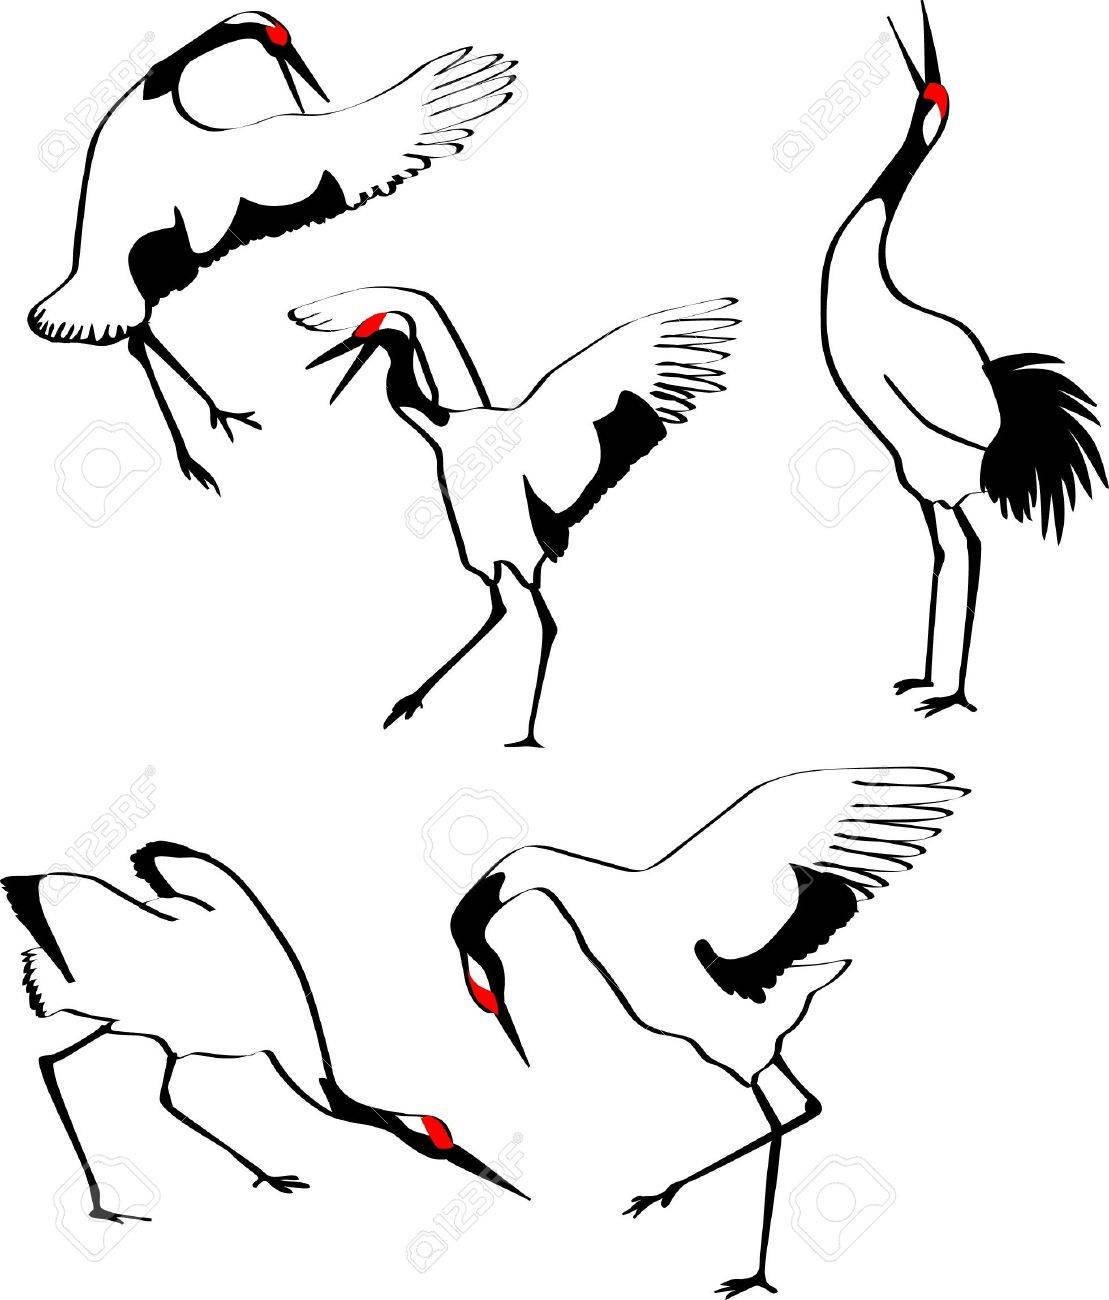 1109x1300 Dancing Japanese Crane Royalty Free Cliparts, Vectors, And Stock